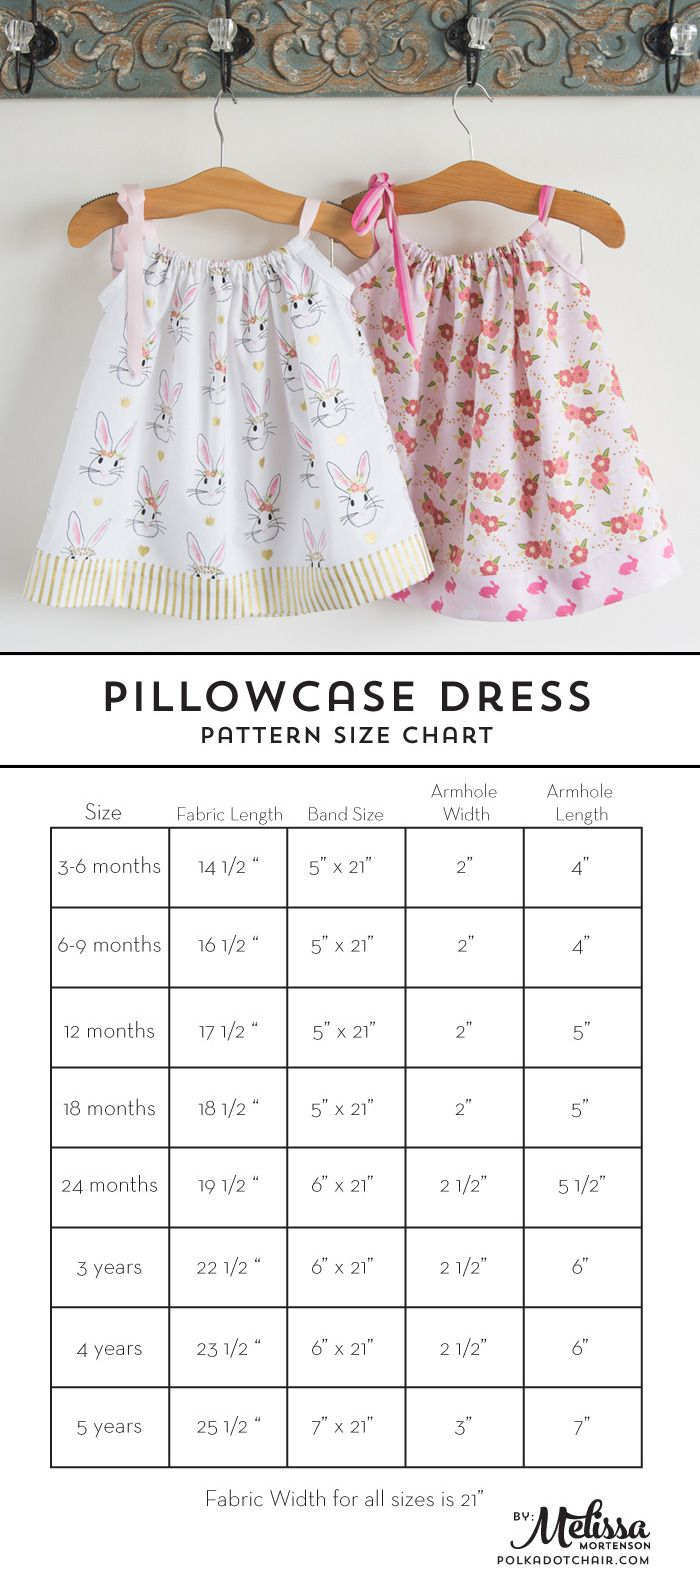 Learn how to sew a pillow case dress with this Pillowcase Dress Tutorial. Includes full instructions a